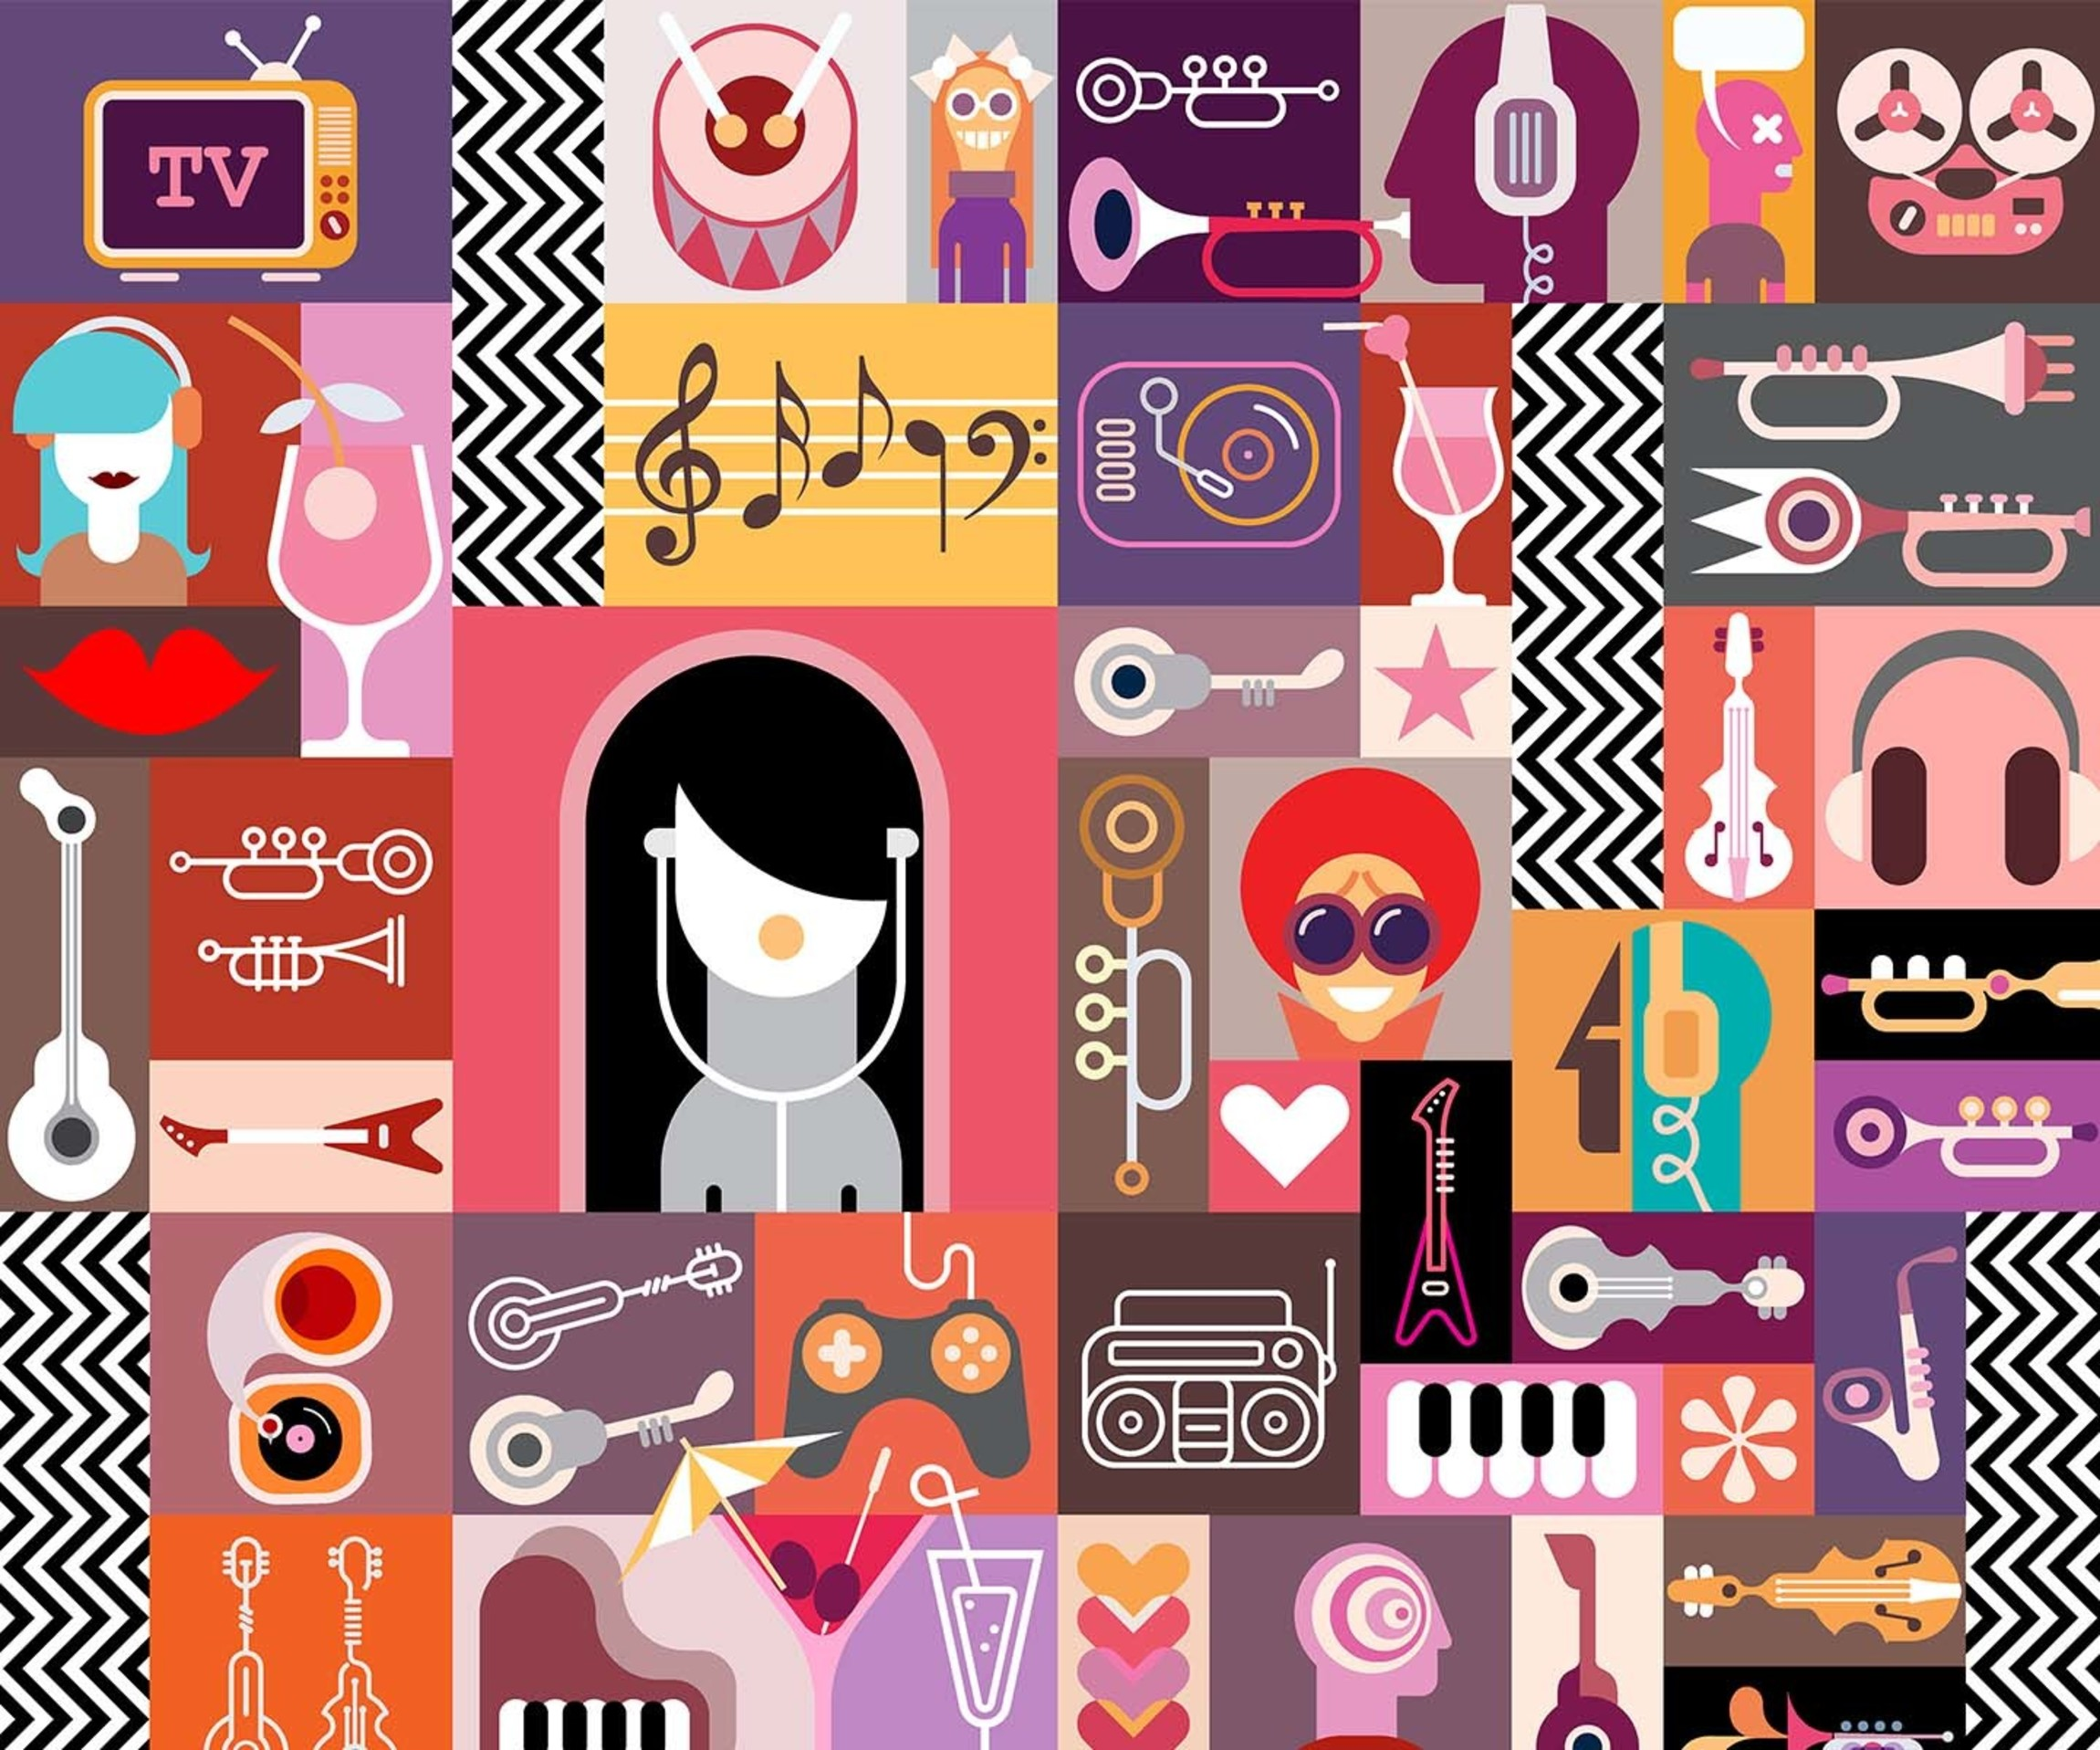 32 Great Websites for Free Vector Art, Images, Graphics, and.